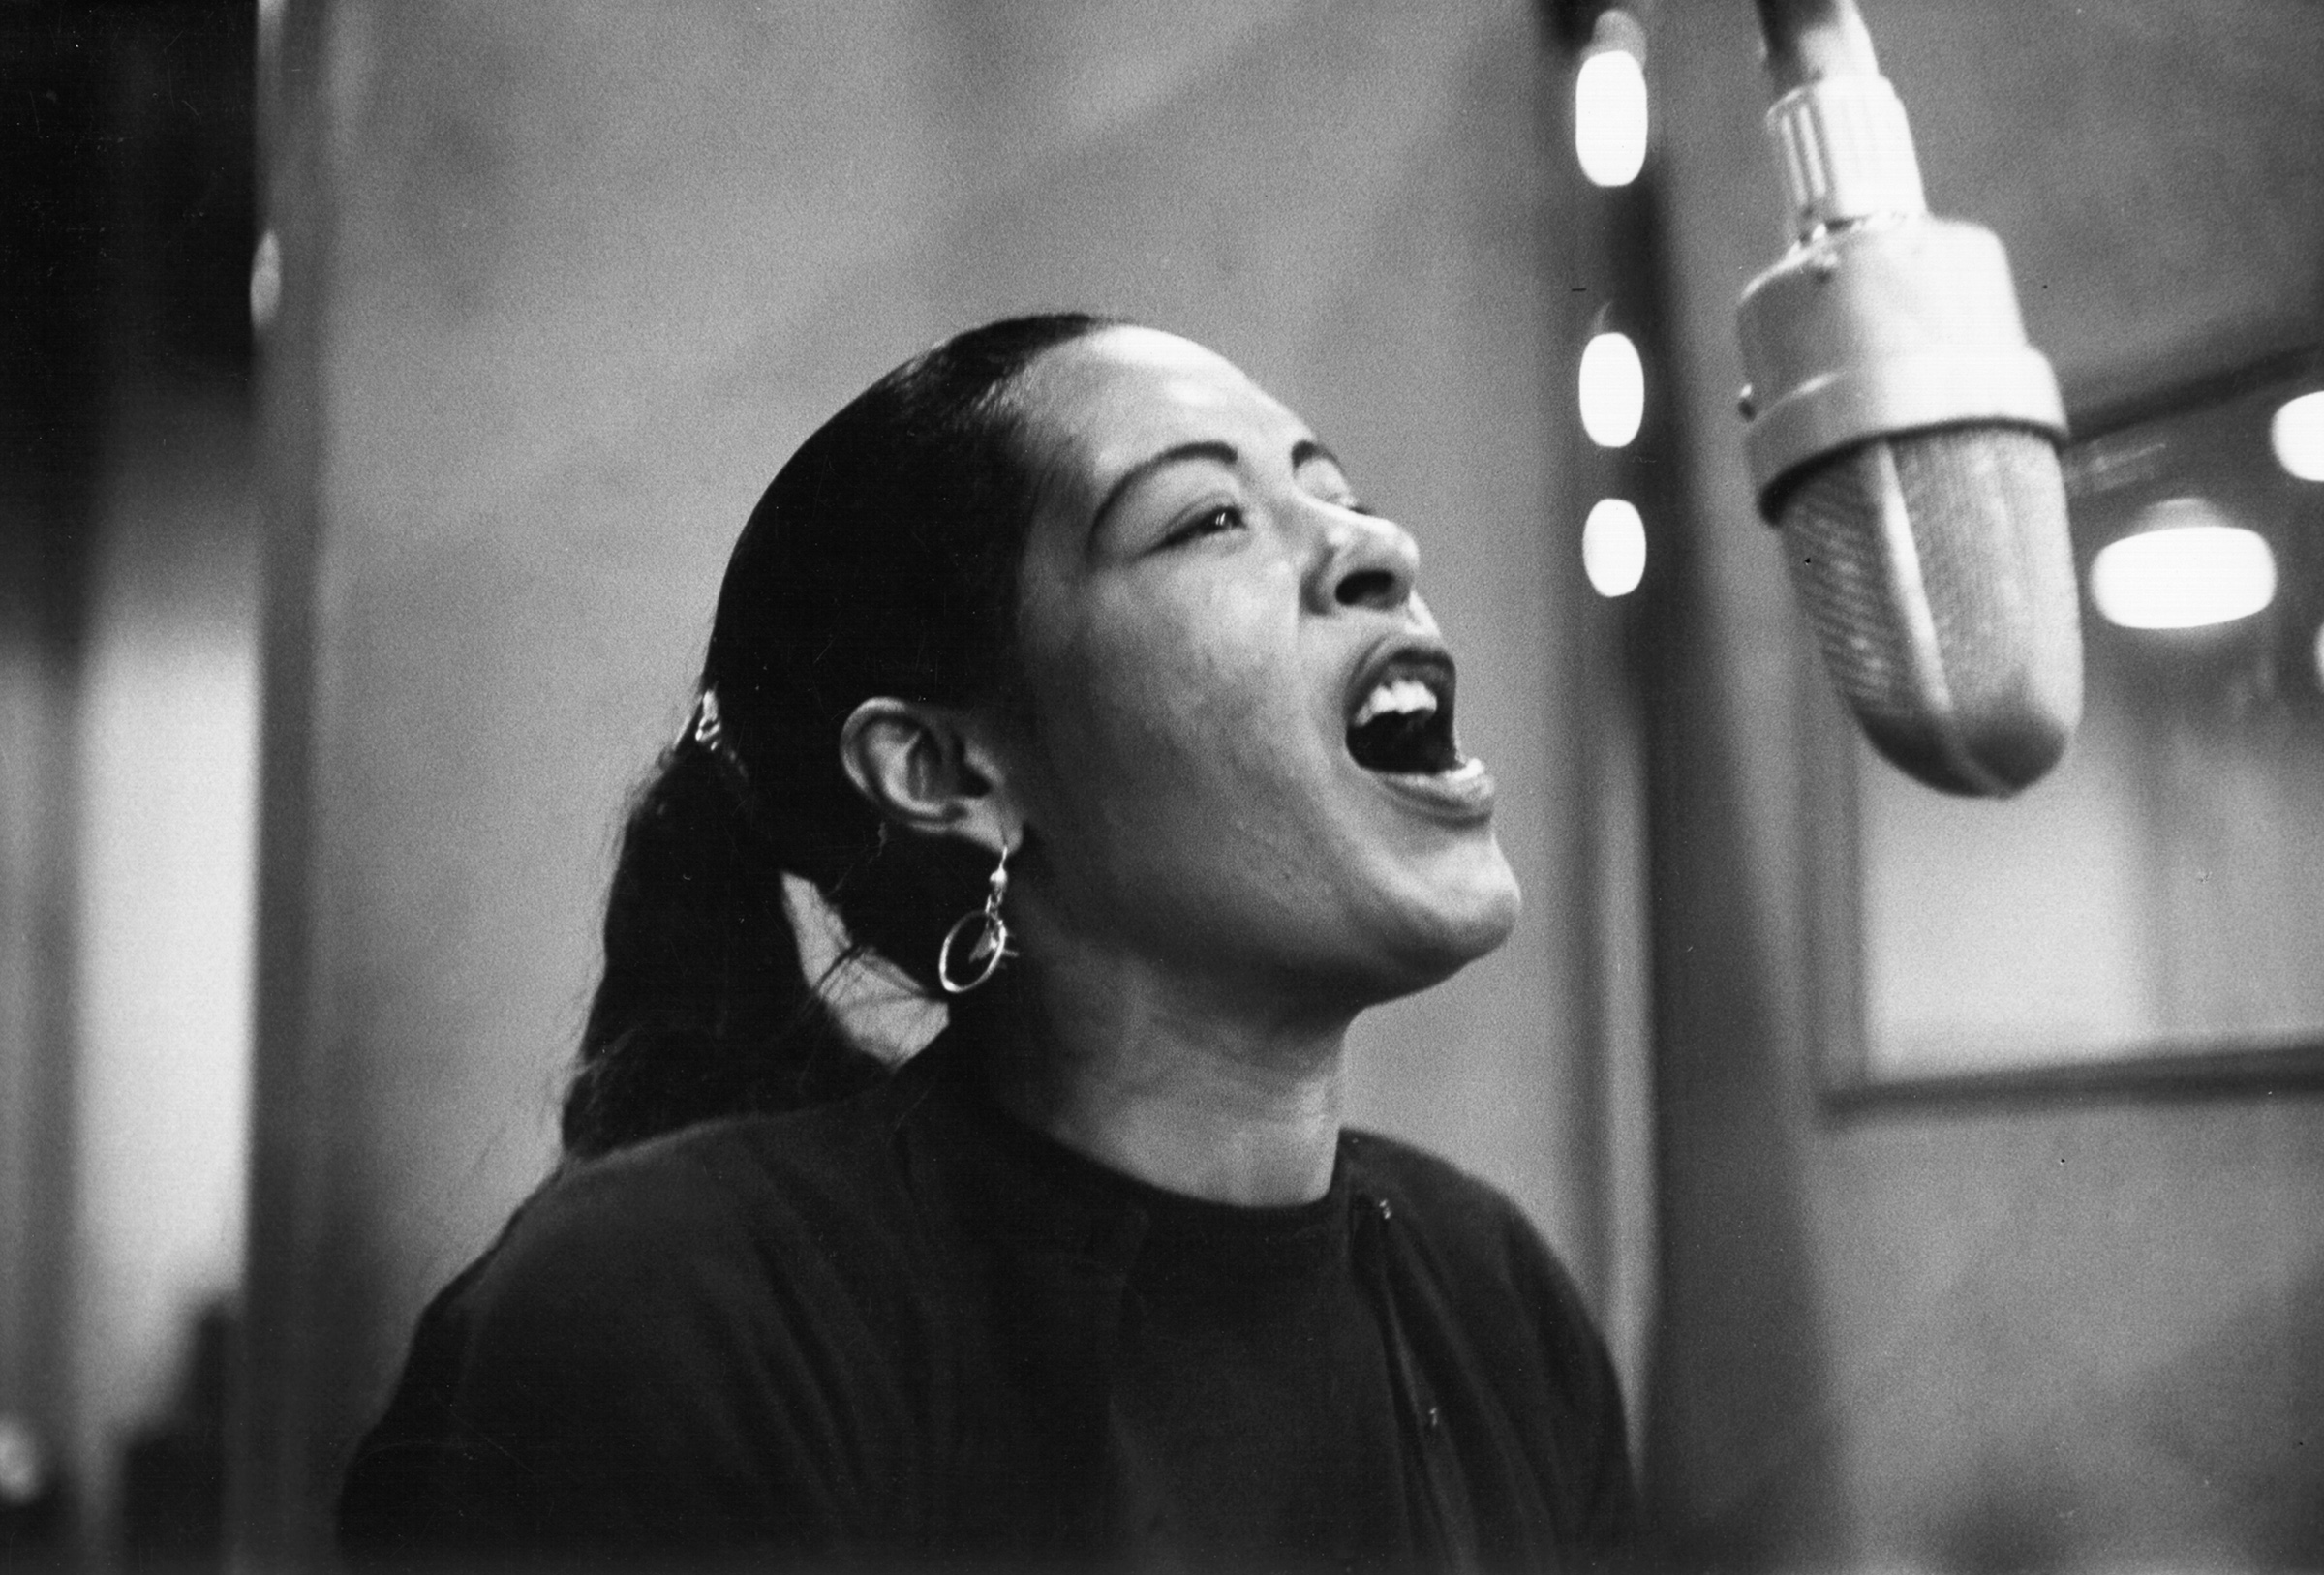 Singer Billie Holiday records her penultimate album at the Columbia Records studio in New York in Dec. 1957.